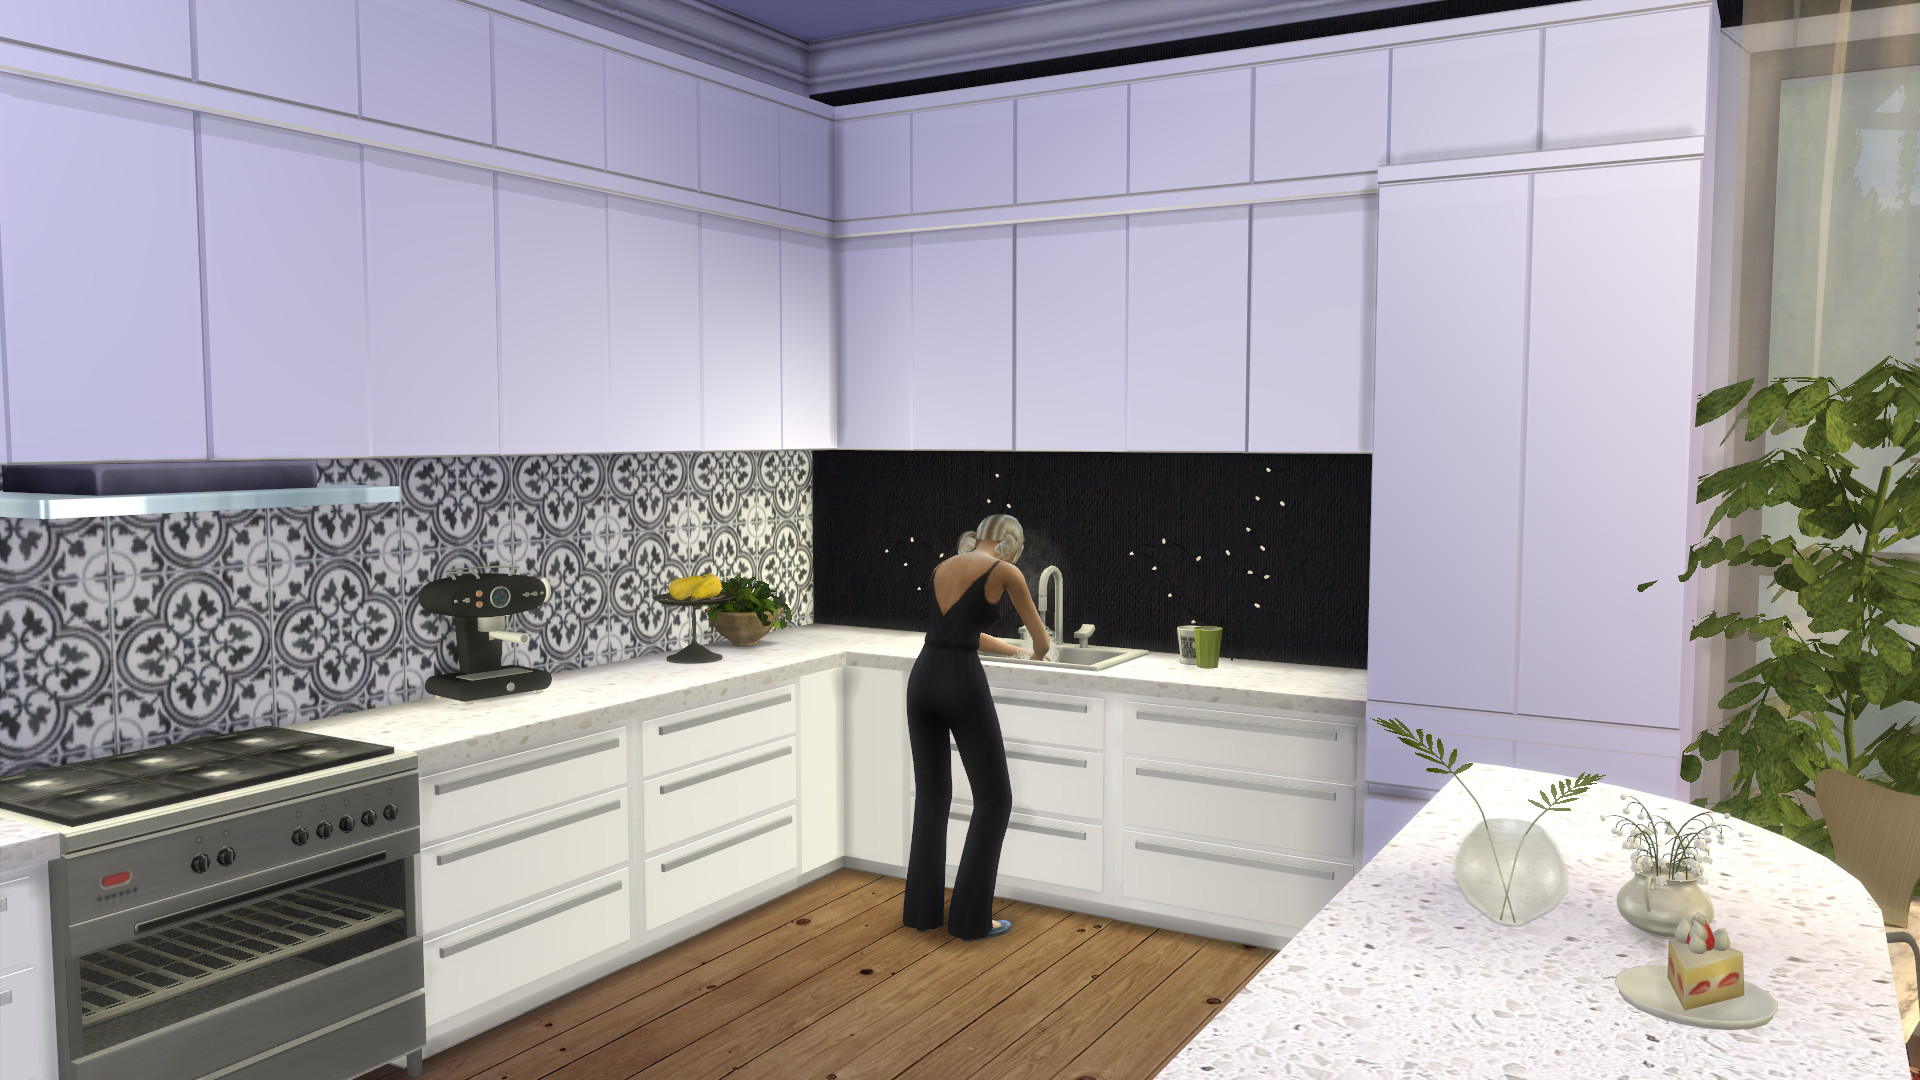 mod the sims - kitchen from perfect patio stuff